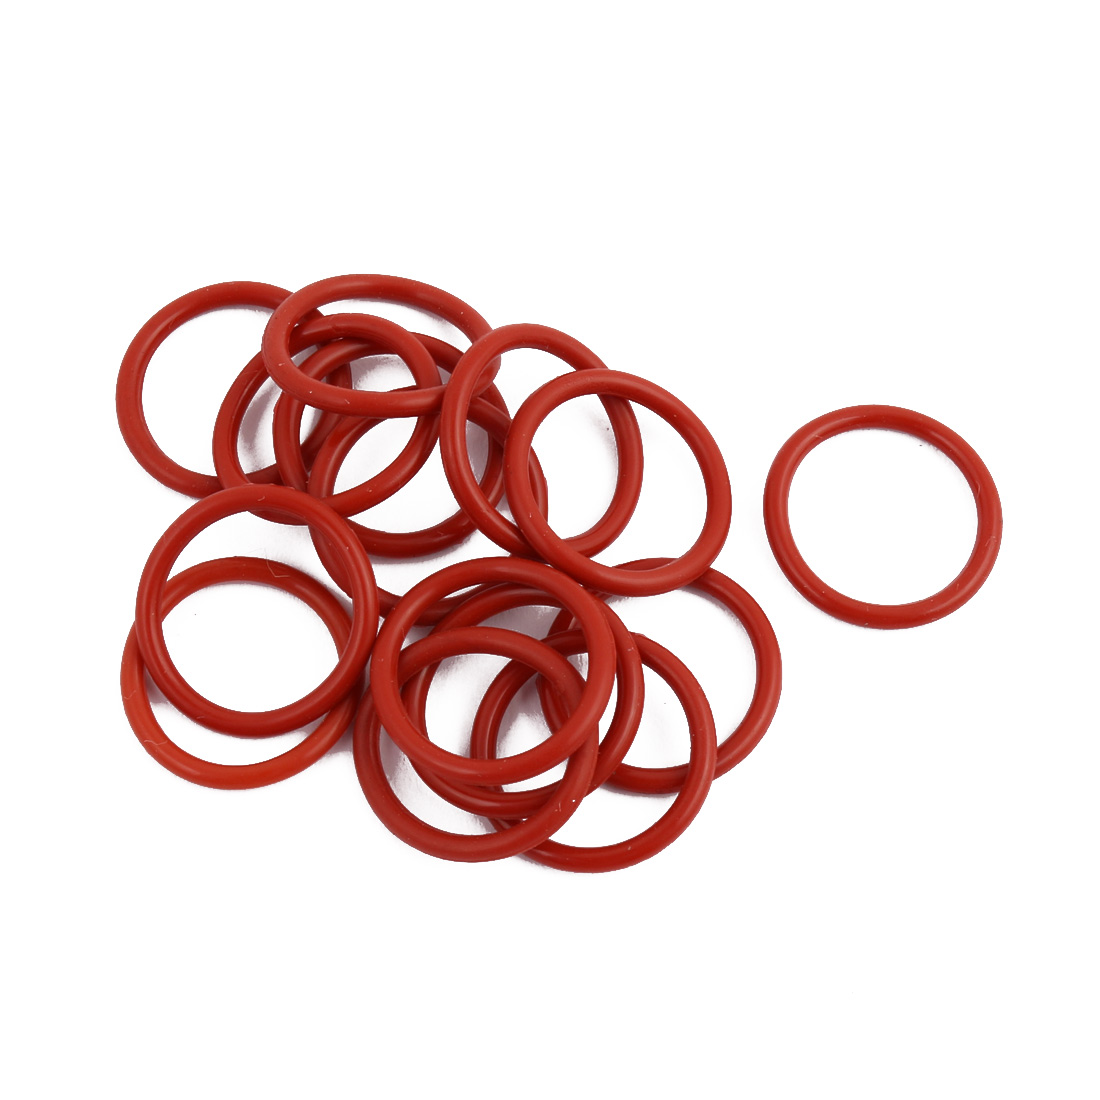 15pcs Red Round Nitrile Butadiene Rubber NBR O-Ring 18mm OD 1.9mm Width